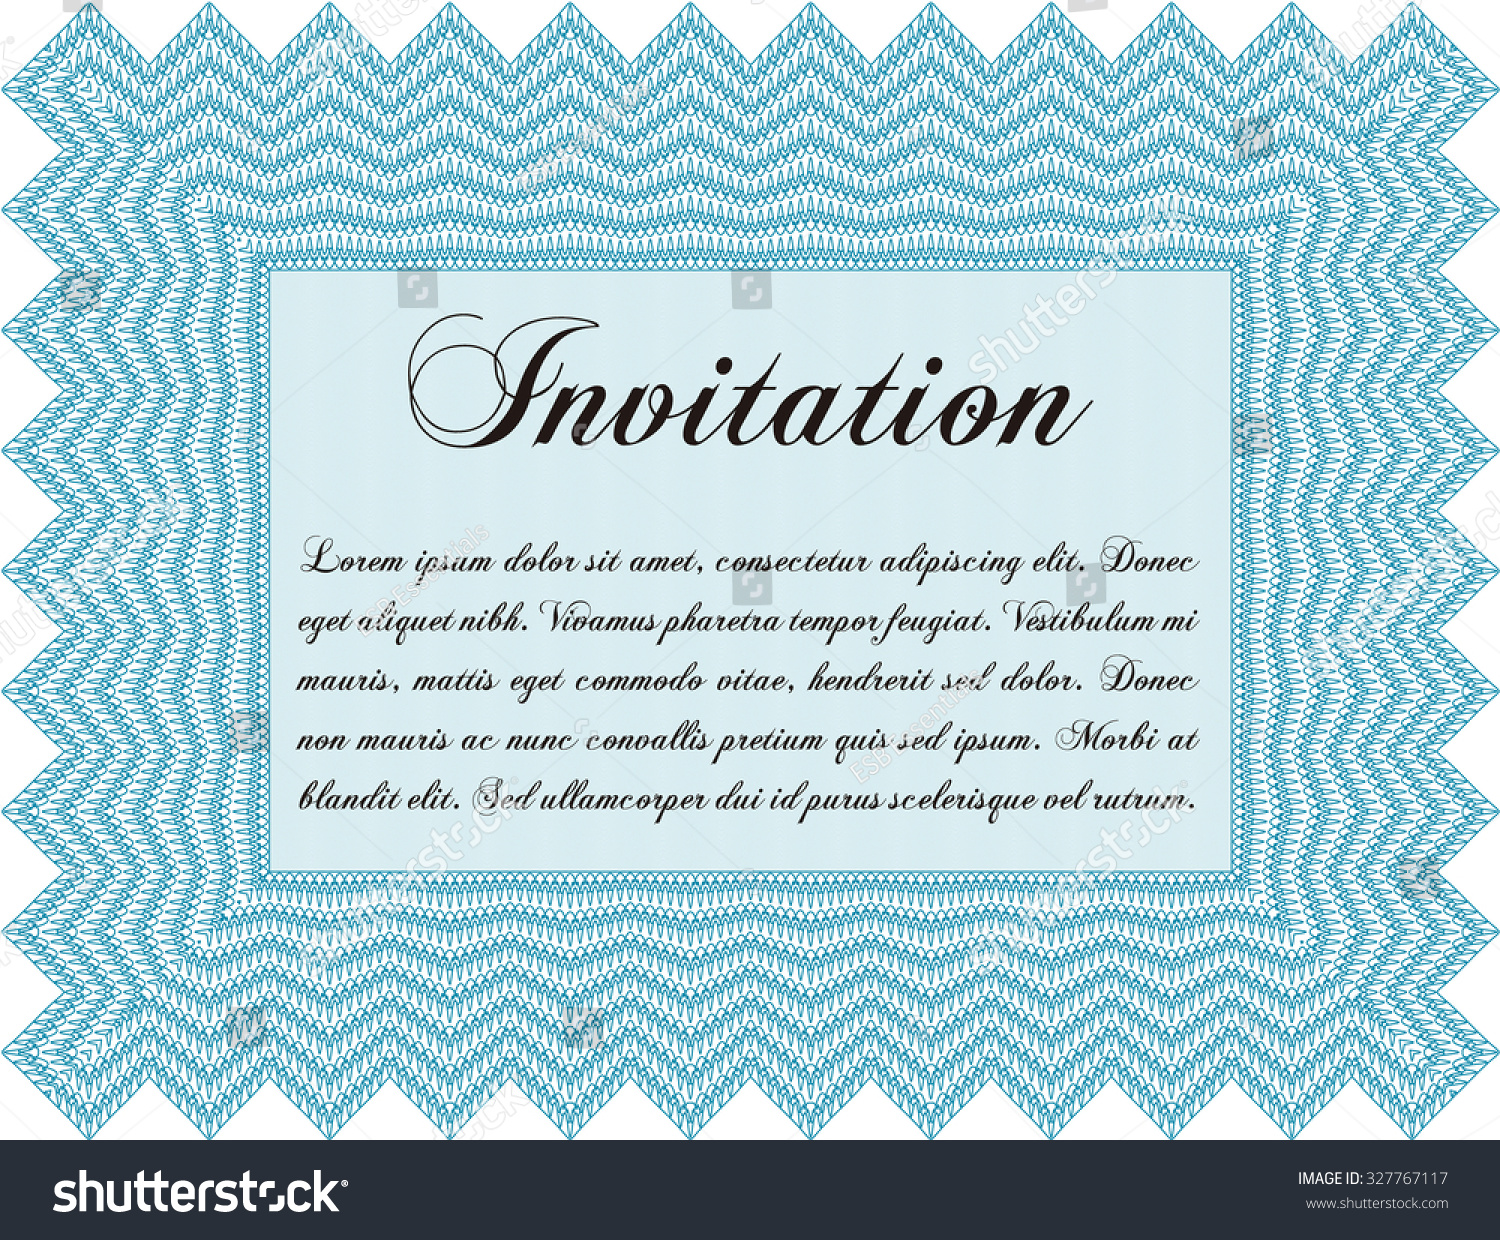 Formal invitation template border frame cordial design stock vector formal invitation template border framerdial design with complex linear background stopboris Image collections